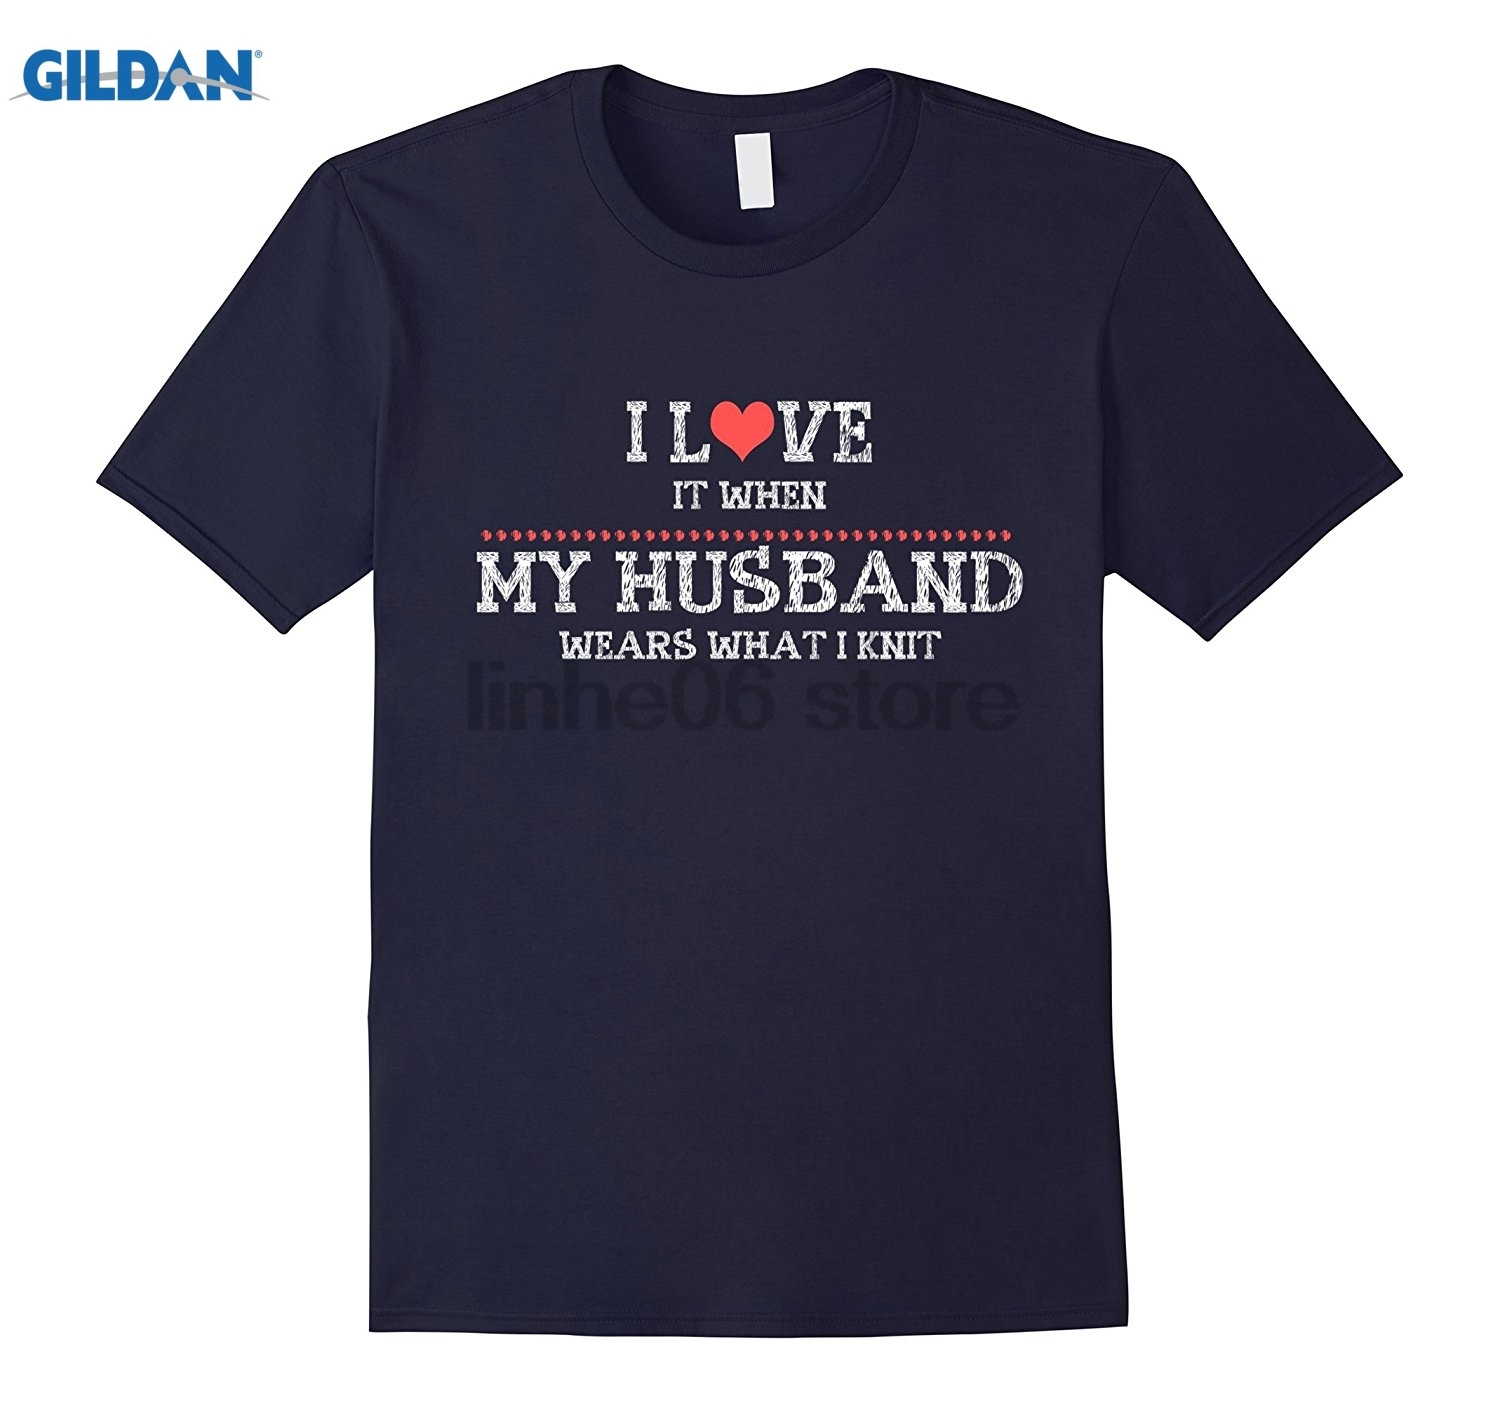 GILDAN I LOVE IT WHEN MY HUSBAND WEARS WHAT I KNIT GREAT GIFT T SHI Brand T-shirt casual ...